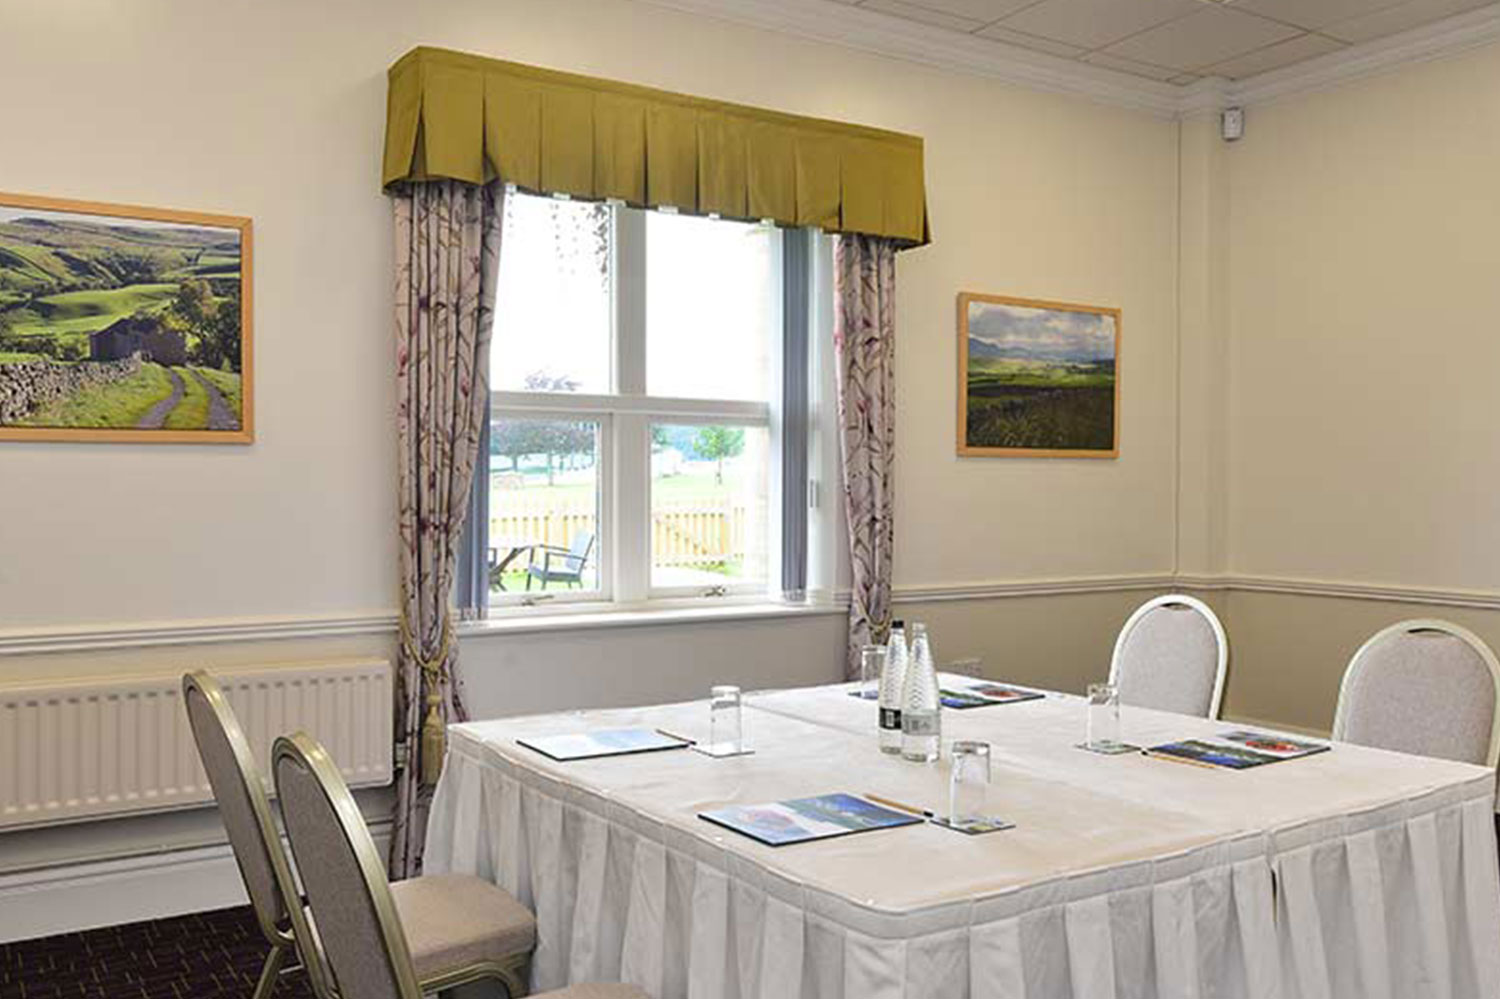 Fewston room Pavilions of Harrogate